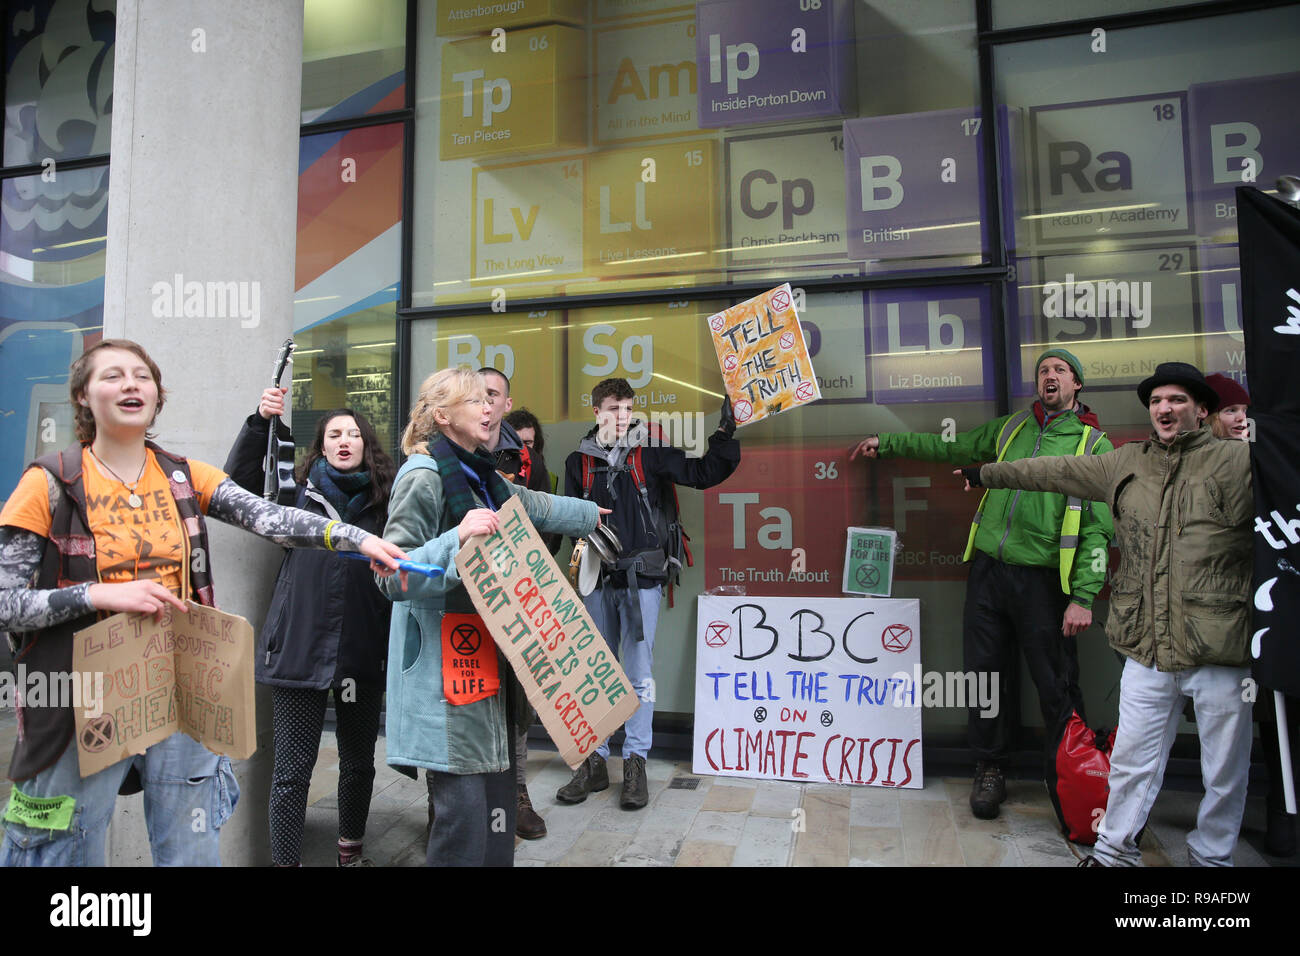 Salford, UK. 21st Dec, 2018. Extinction Rebellion campaigners hold a protest outside the BBC to convey their concerns of the climate and ecological emergency and demand urgent action. The campaigners said they are calling on the BBC, as a respected media voice in the UK, to play a key role in the change needed'. BBC, Media City, Salford, UK, 21st December 2018 (C)Barbara Cook/Alamy Live News Credit: Barbara Cook/Alamy Live News - Stock Image